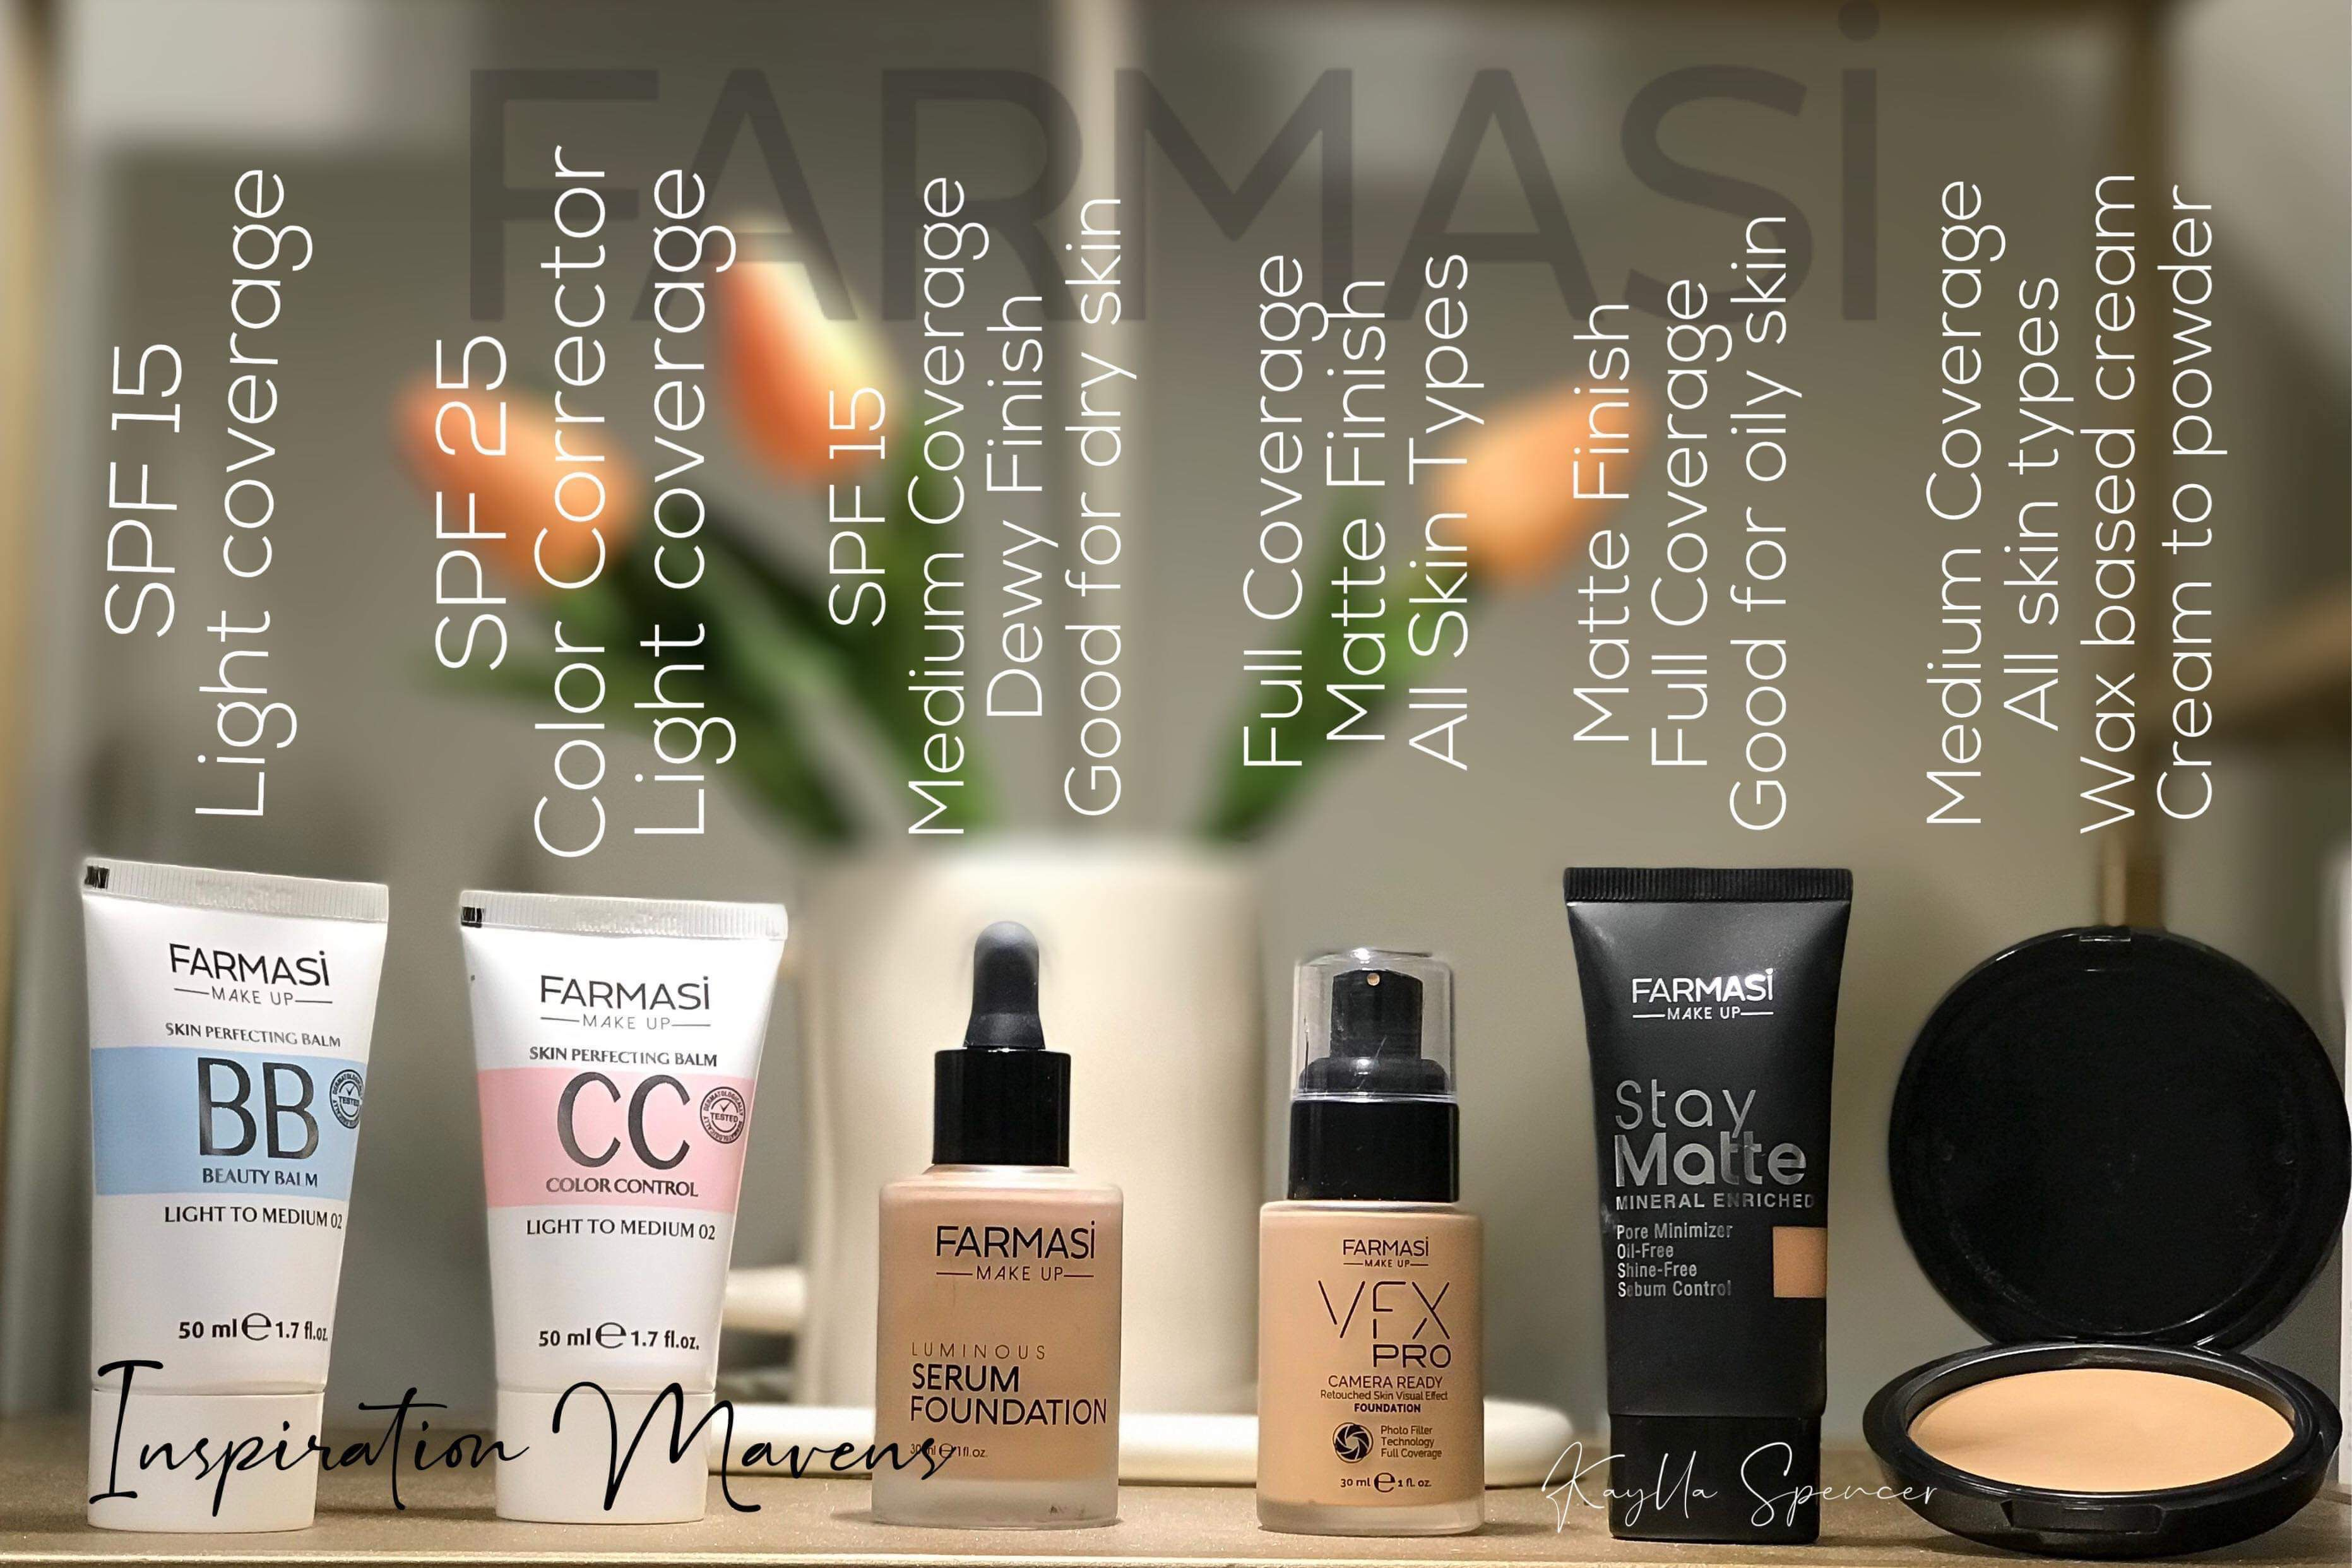 Farmasi Foundations farmasi farmasicosmetics